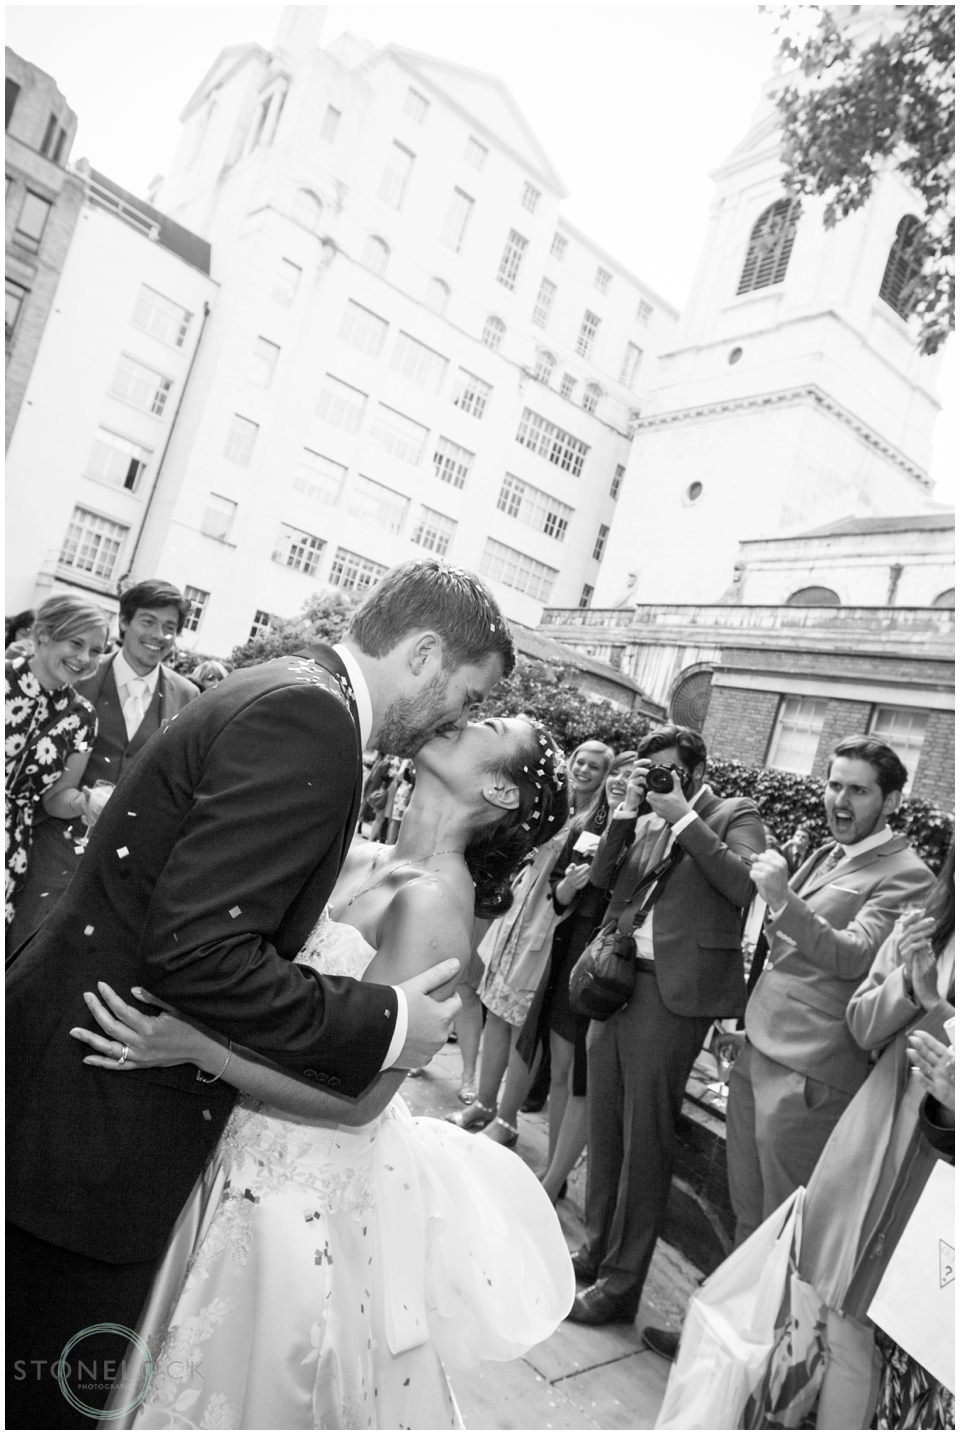 Bride and groom kiss outside St Bride's Foundation in Fleet Street London